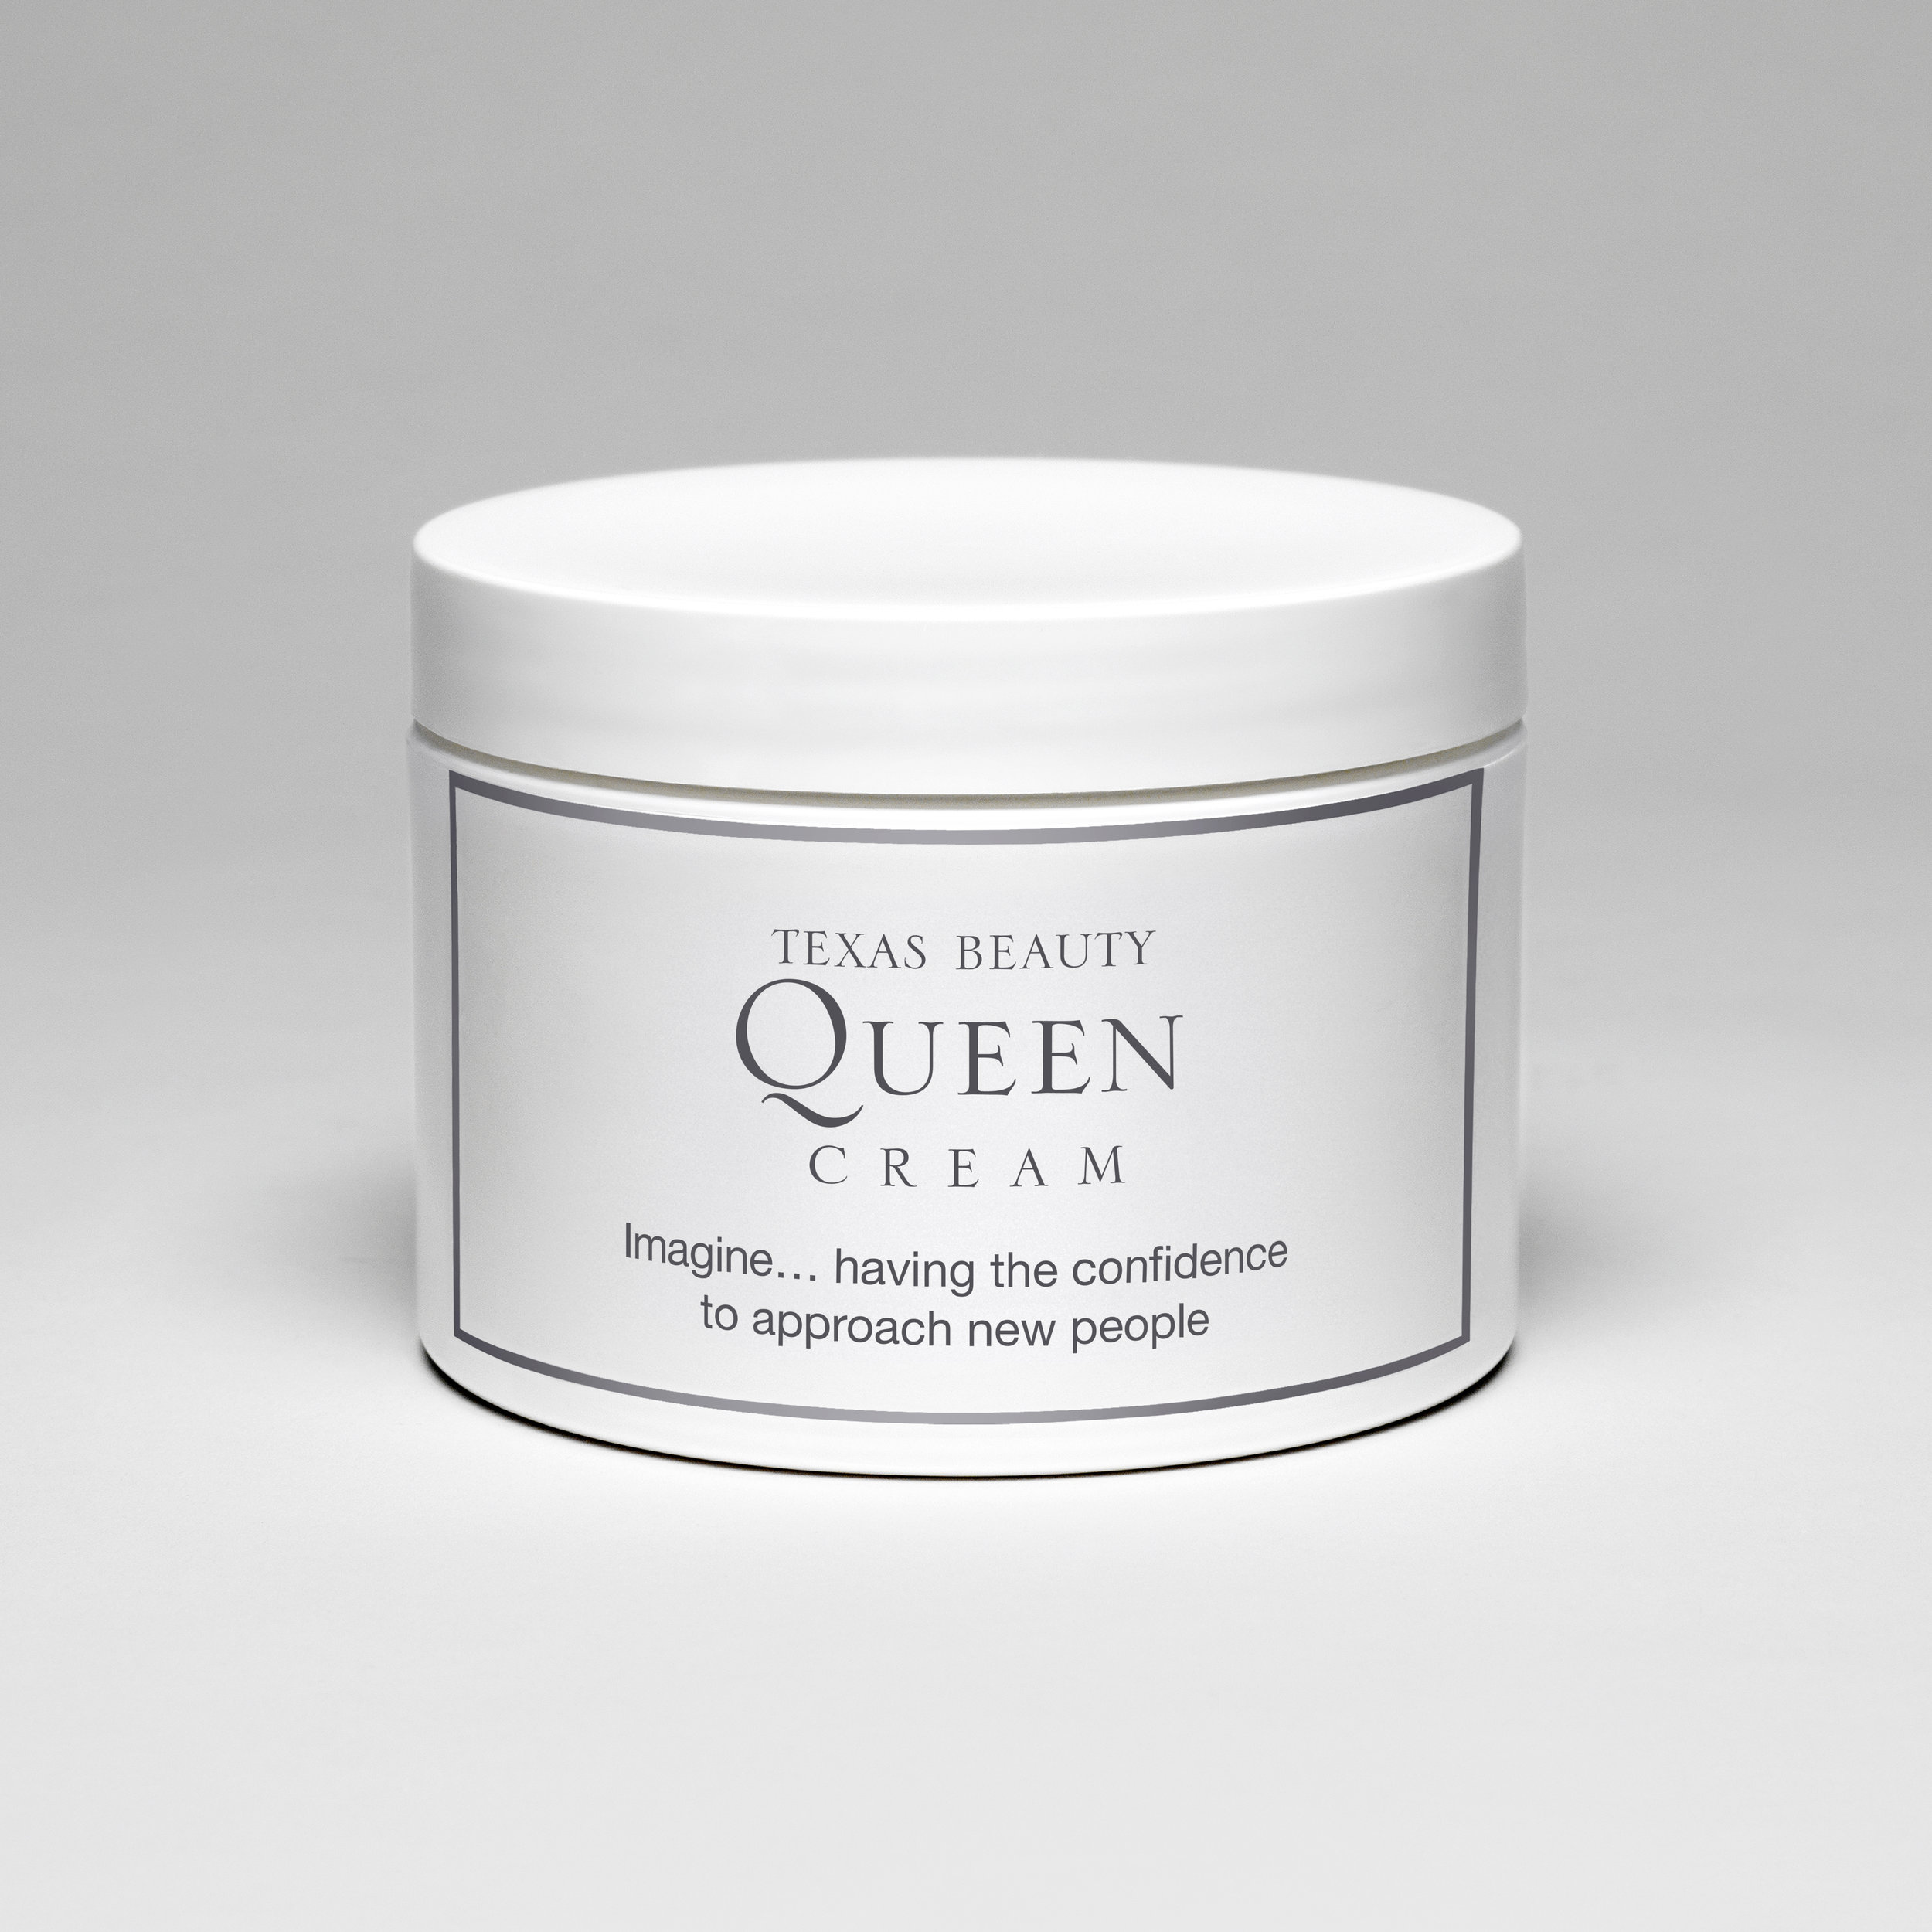 Texas Beauty Queen Cream (Imagine…having the confidence to approach new people) , 2009  Archival photographic print  12 x 12 inches